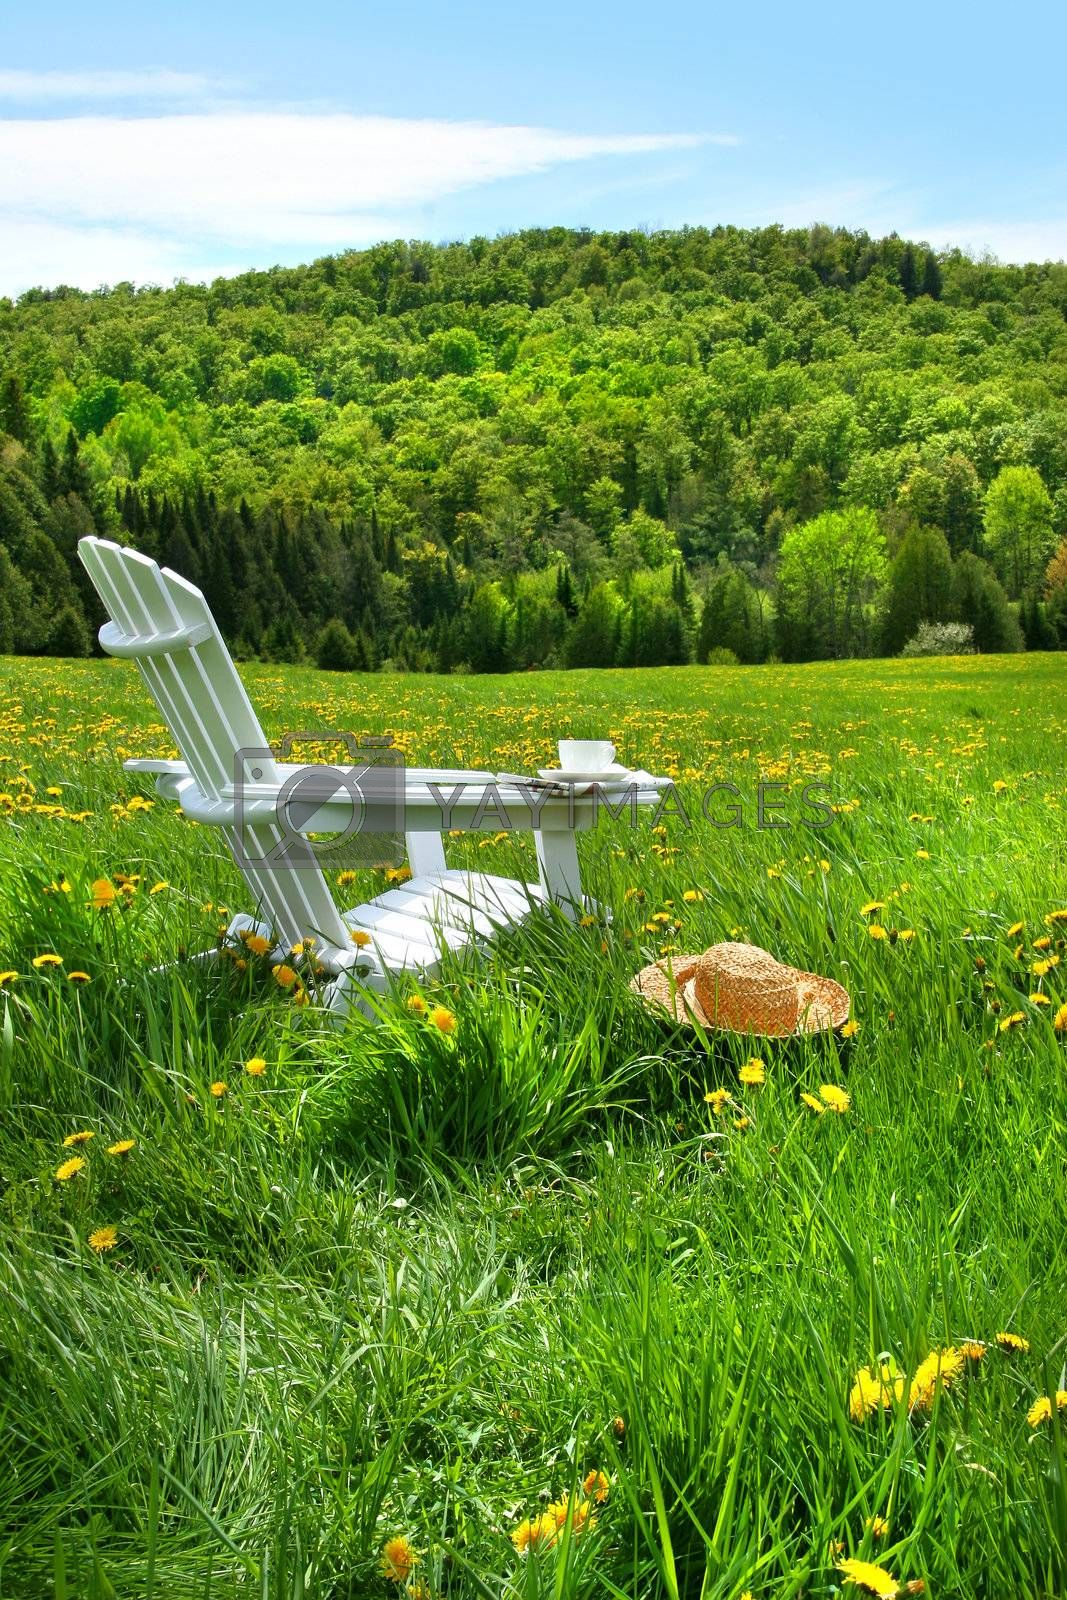 Relaxing on a summer chair in a field of tall grass with a sunset